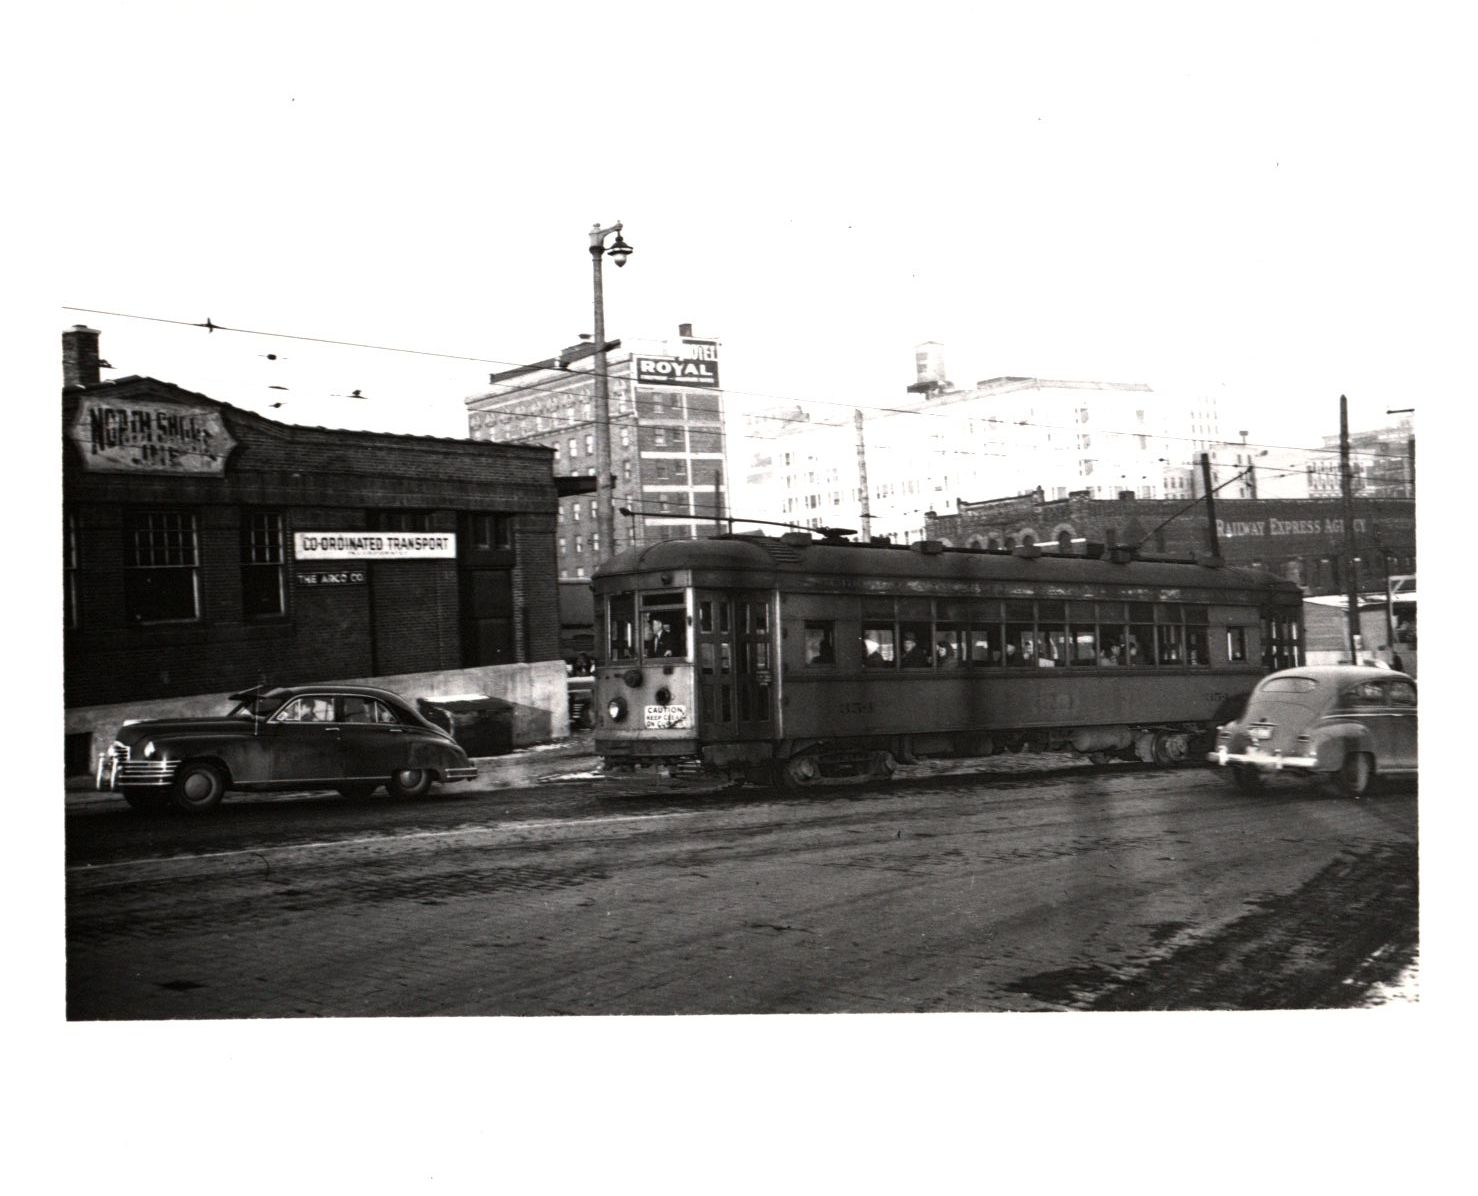 <table class=&quot;lightbox&quot;><tr><td colspan=2 class=&quot;lightbox-title&quot;>North Shore Interurban Line</td></tr><tr><td colspan=2 class=&quot;lightbox-caption&quot;>An interurban streetcar full of passengers rolls along near the old Milwaukee Road Union Depot once located at N. 6th and W. Clybourn Streets. </td></tr><tr><td colspan=2 class=&quot;lightbox-spacer&quot;></td></tr><tr class=&quot;lightbox-detail&quot;><td class=&quot;cell-title&quot;>Source: </td><td class=&quot;cell-value&quot;>From the Robert W. Eichelberg Papers. Archives, University of Wisconsin-Milwaukee Libraries.<br /><a href=&quot;http://digicoll.library.wisc.edu/cgi/f/findaid/findaid-idx?c=wiarchives;view=reslist;subview=standard;didno=uw-mil-uwmmss0228;focusrgn=contentslist;cc=wiarchives;byte=47554507&quot; target=&quot;_blank&quot;>University of Wisconsin-Milwaukee Libraries</a></td></tr><tr class=&quot;filler-row&quot;><td colspan=2>&nbsp;</td></tr></table>